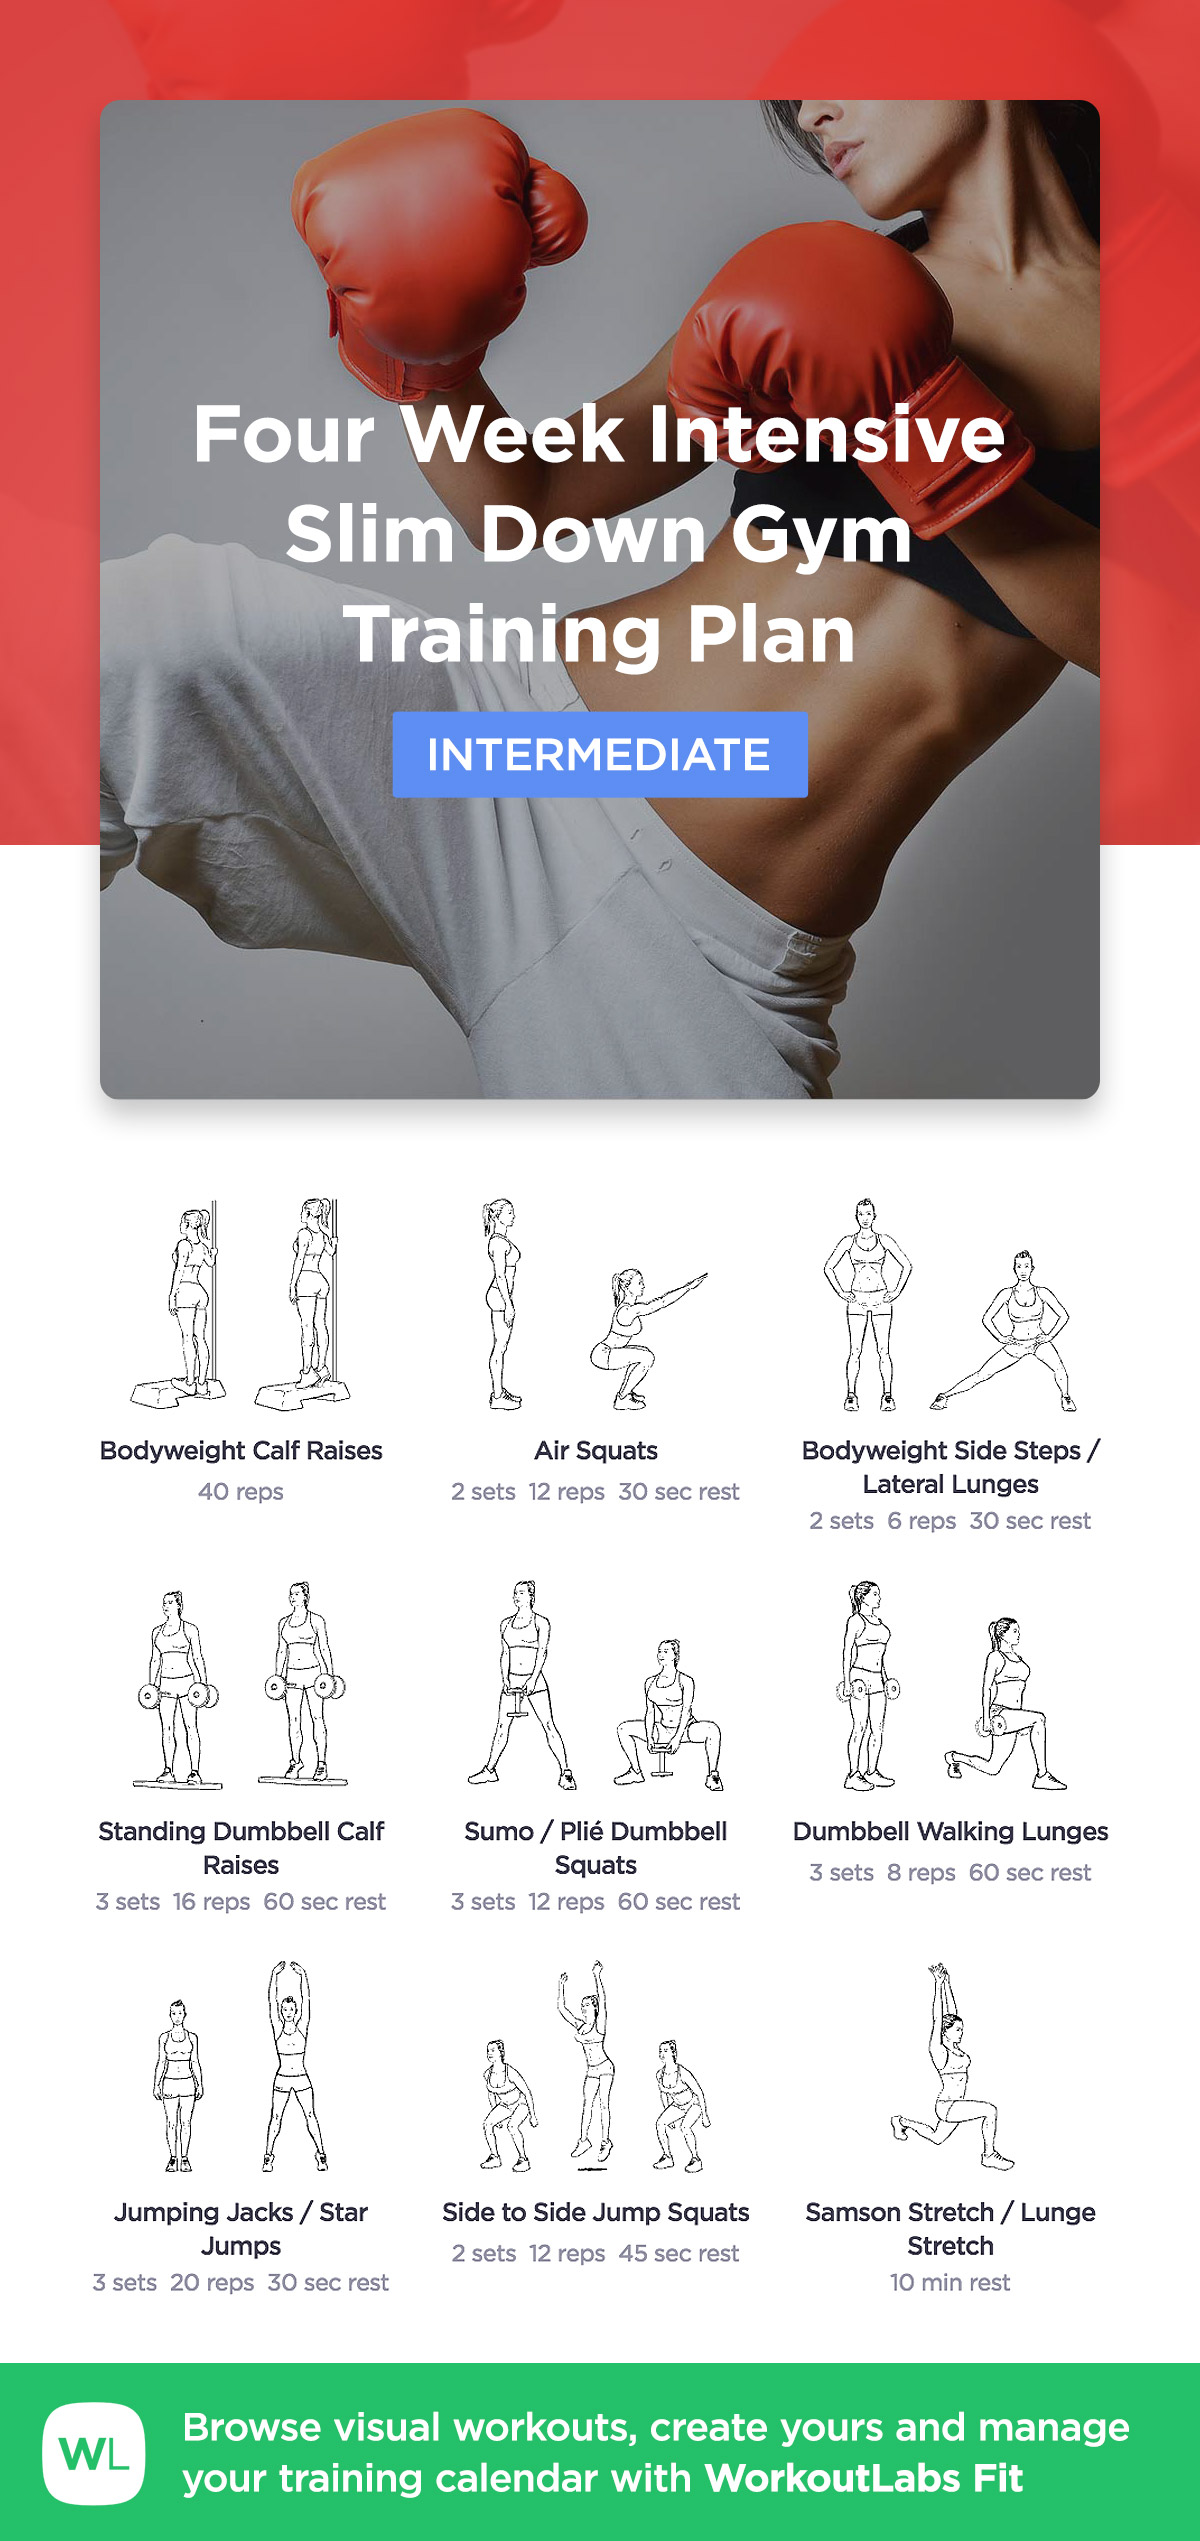 MORE WORKOUTS Four Week Intensive Slim Down